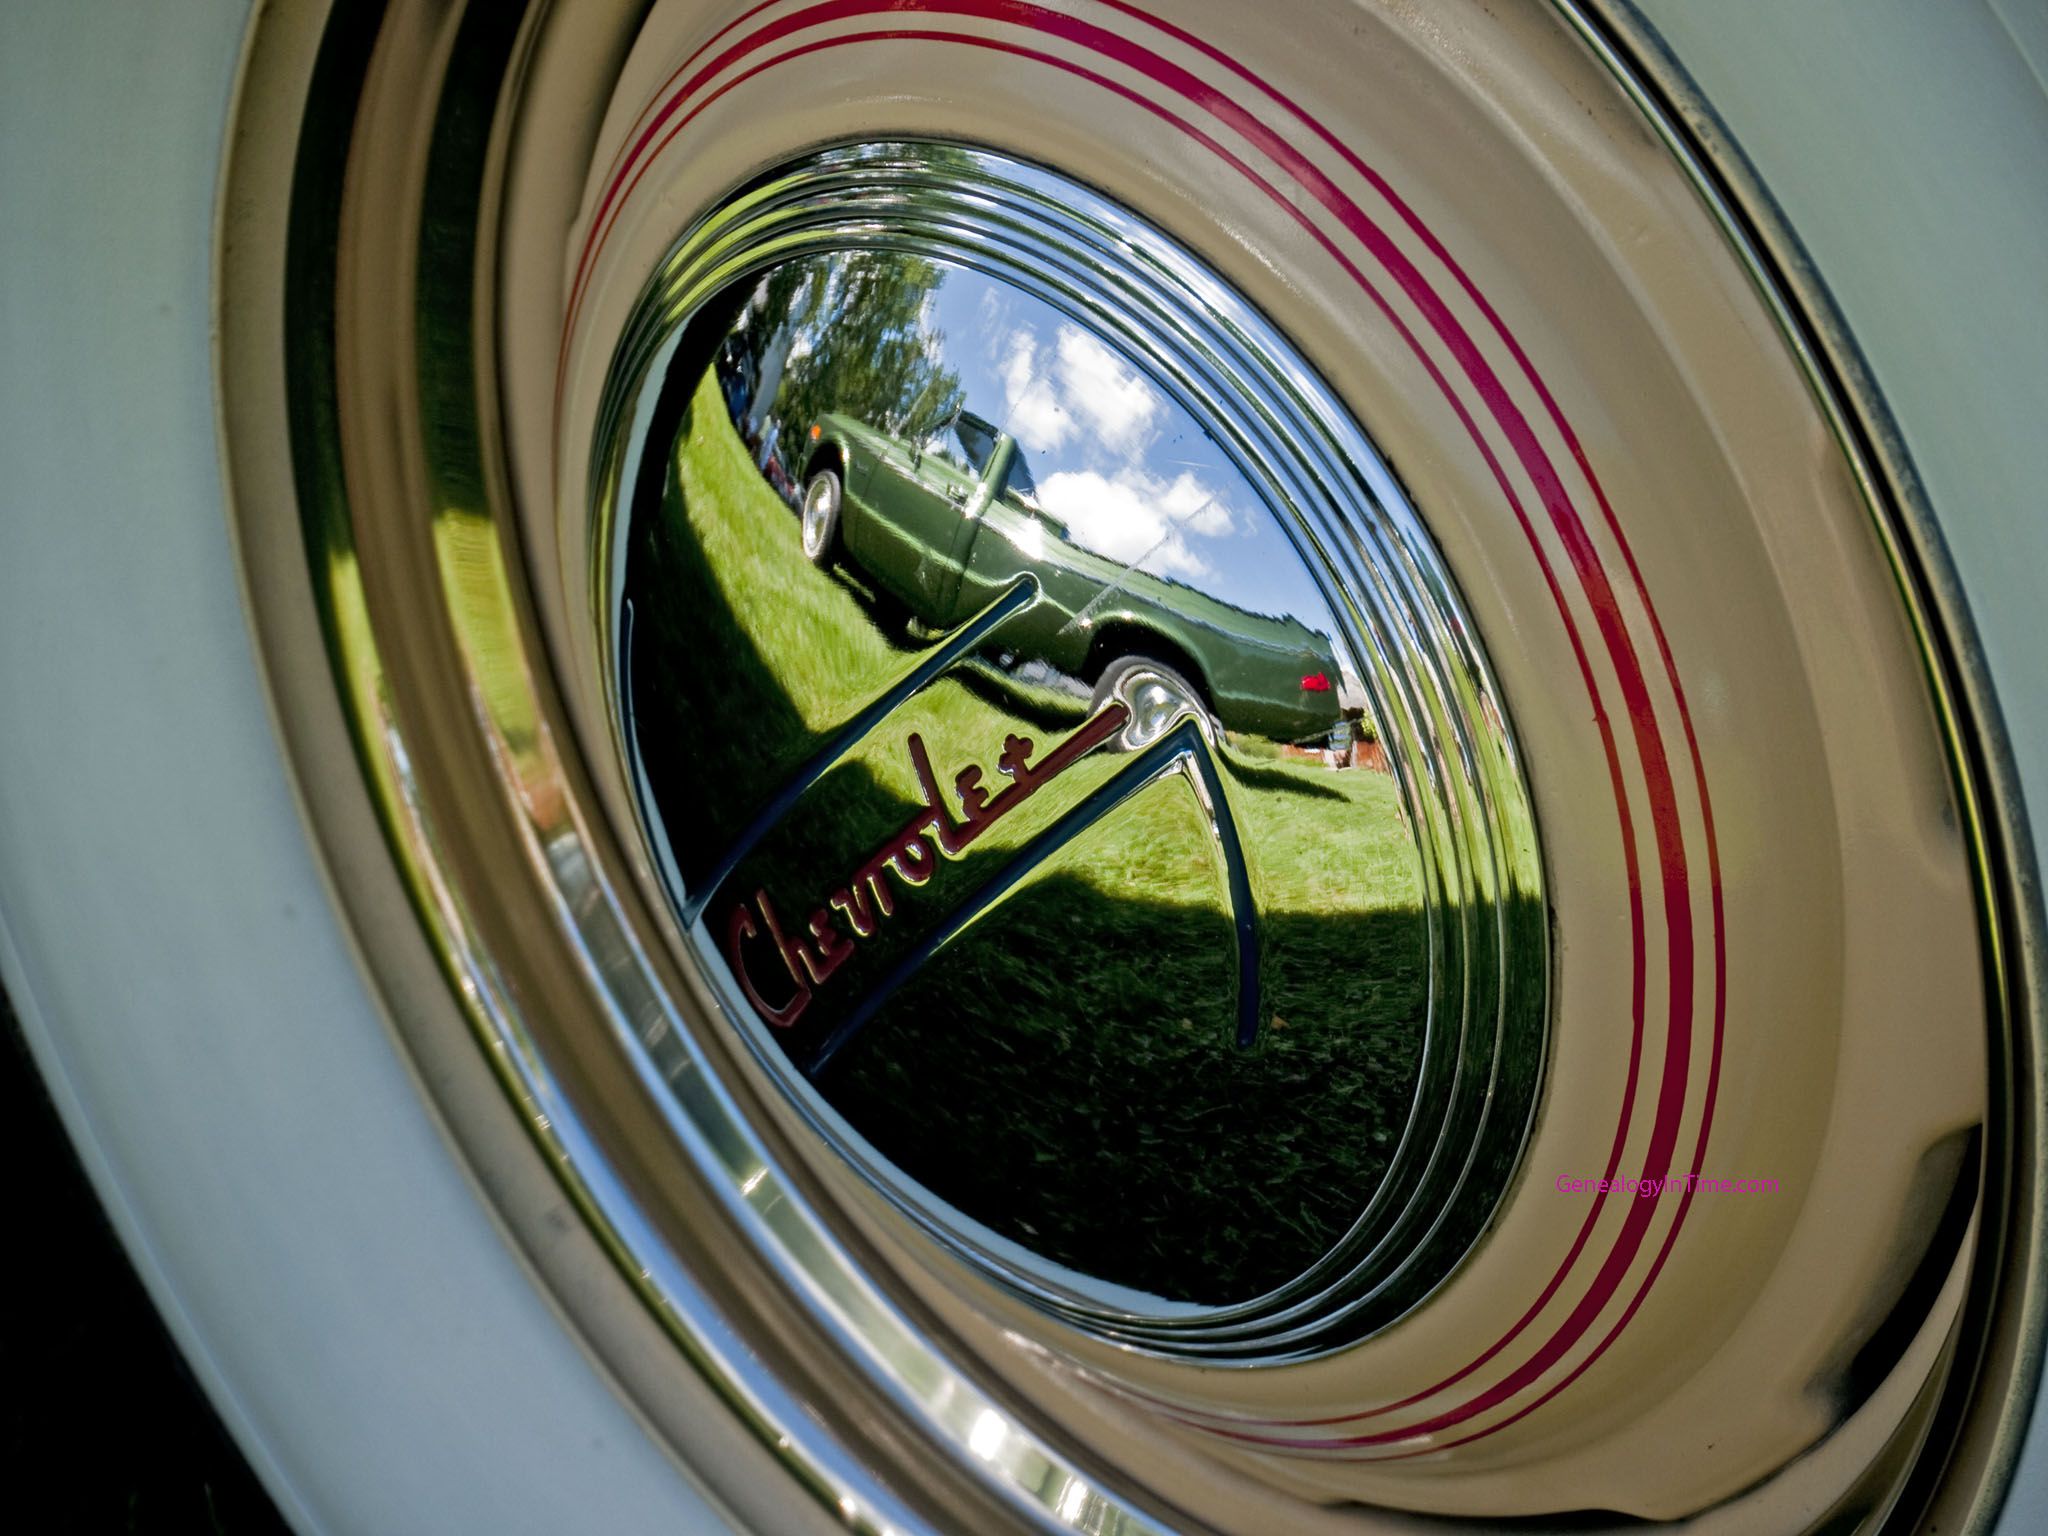 1970s Chevrolet truck reflected in a 1937 Chevrolet hubcap